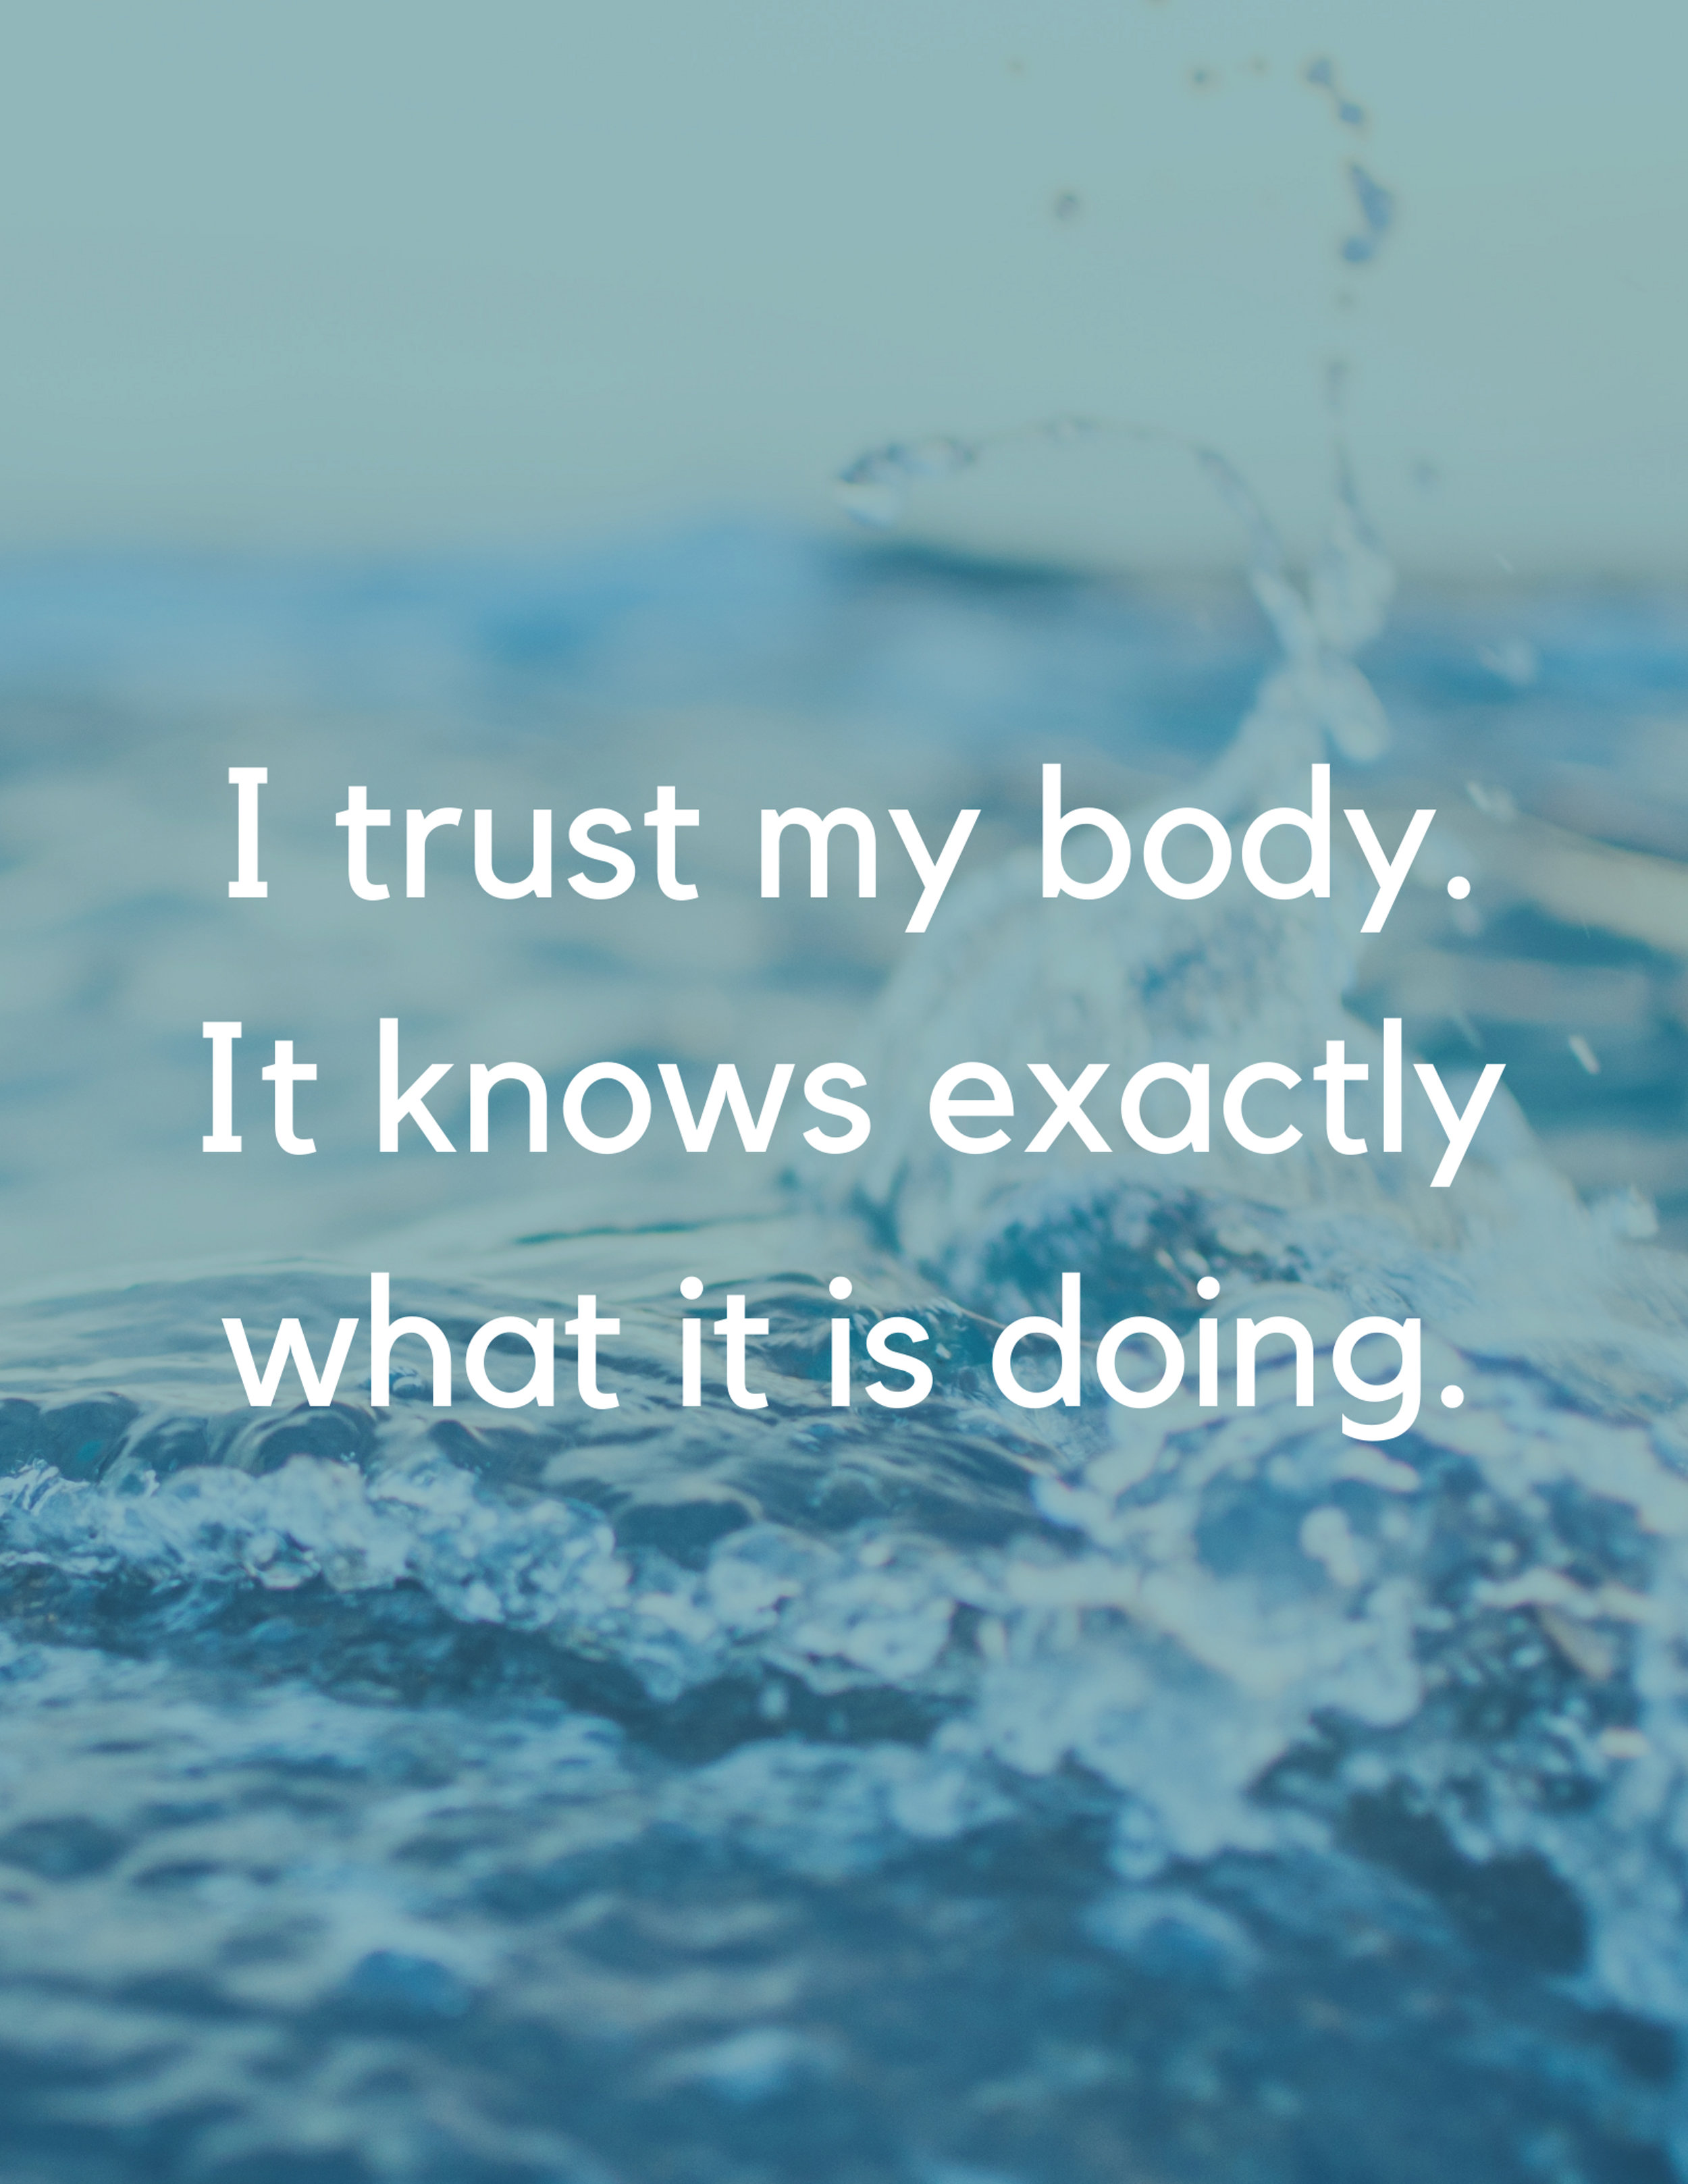 I trust my body - It knows exactly what it is doing.jpg